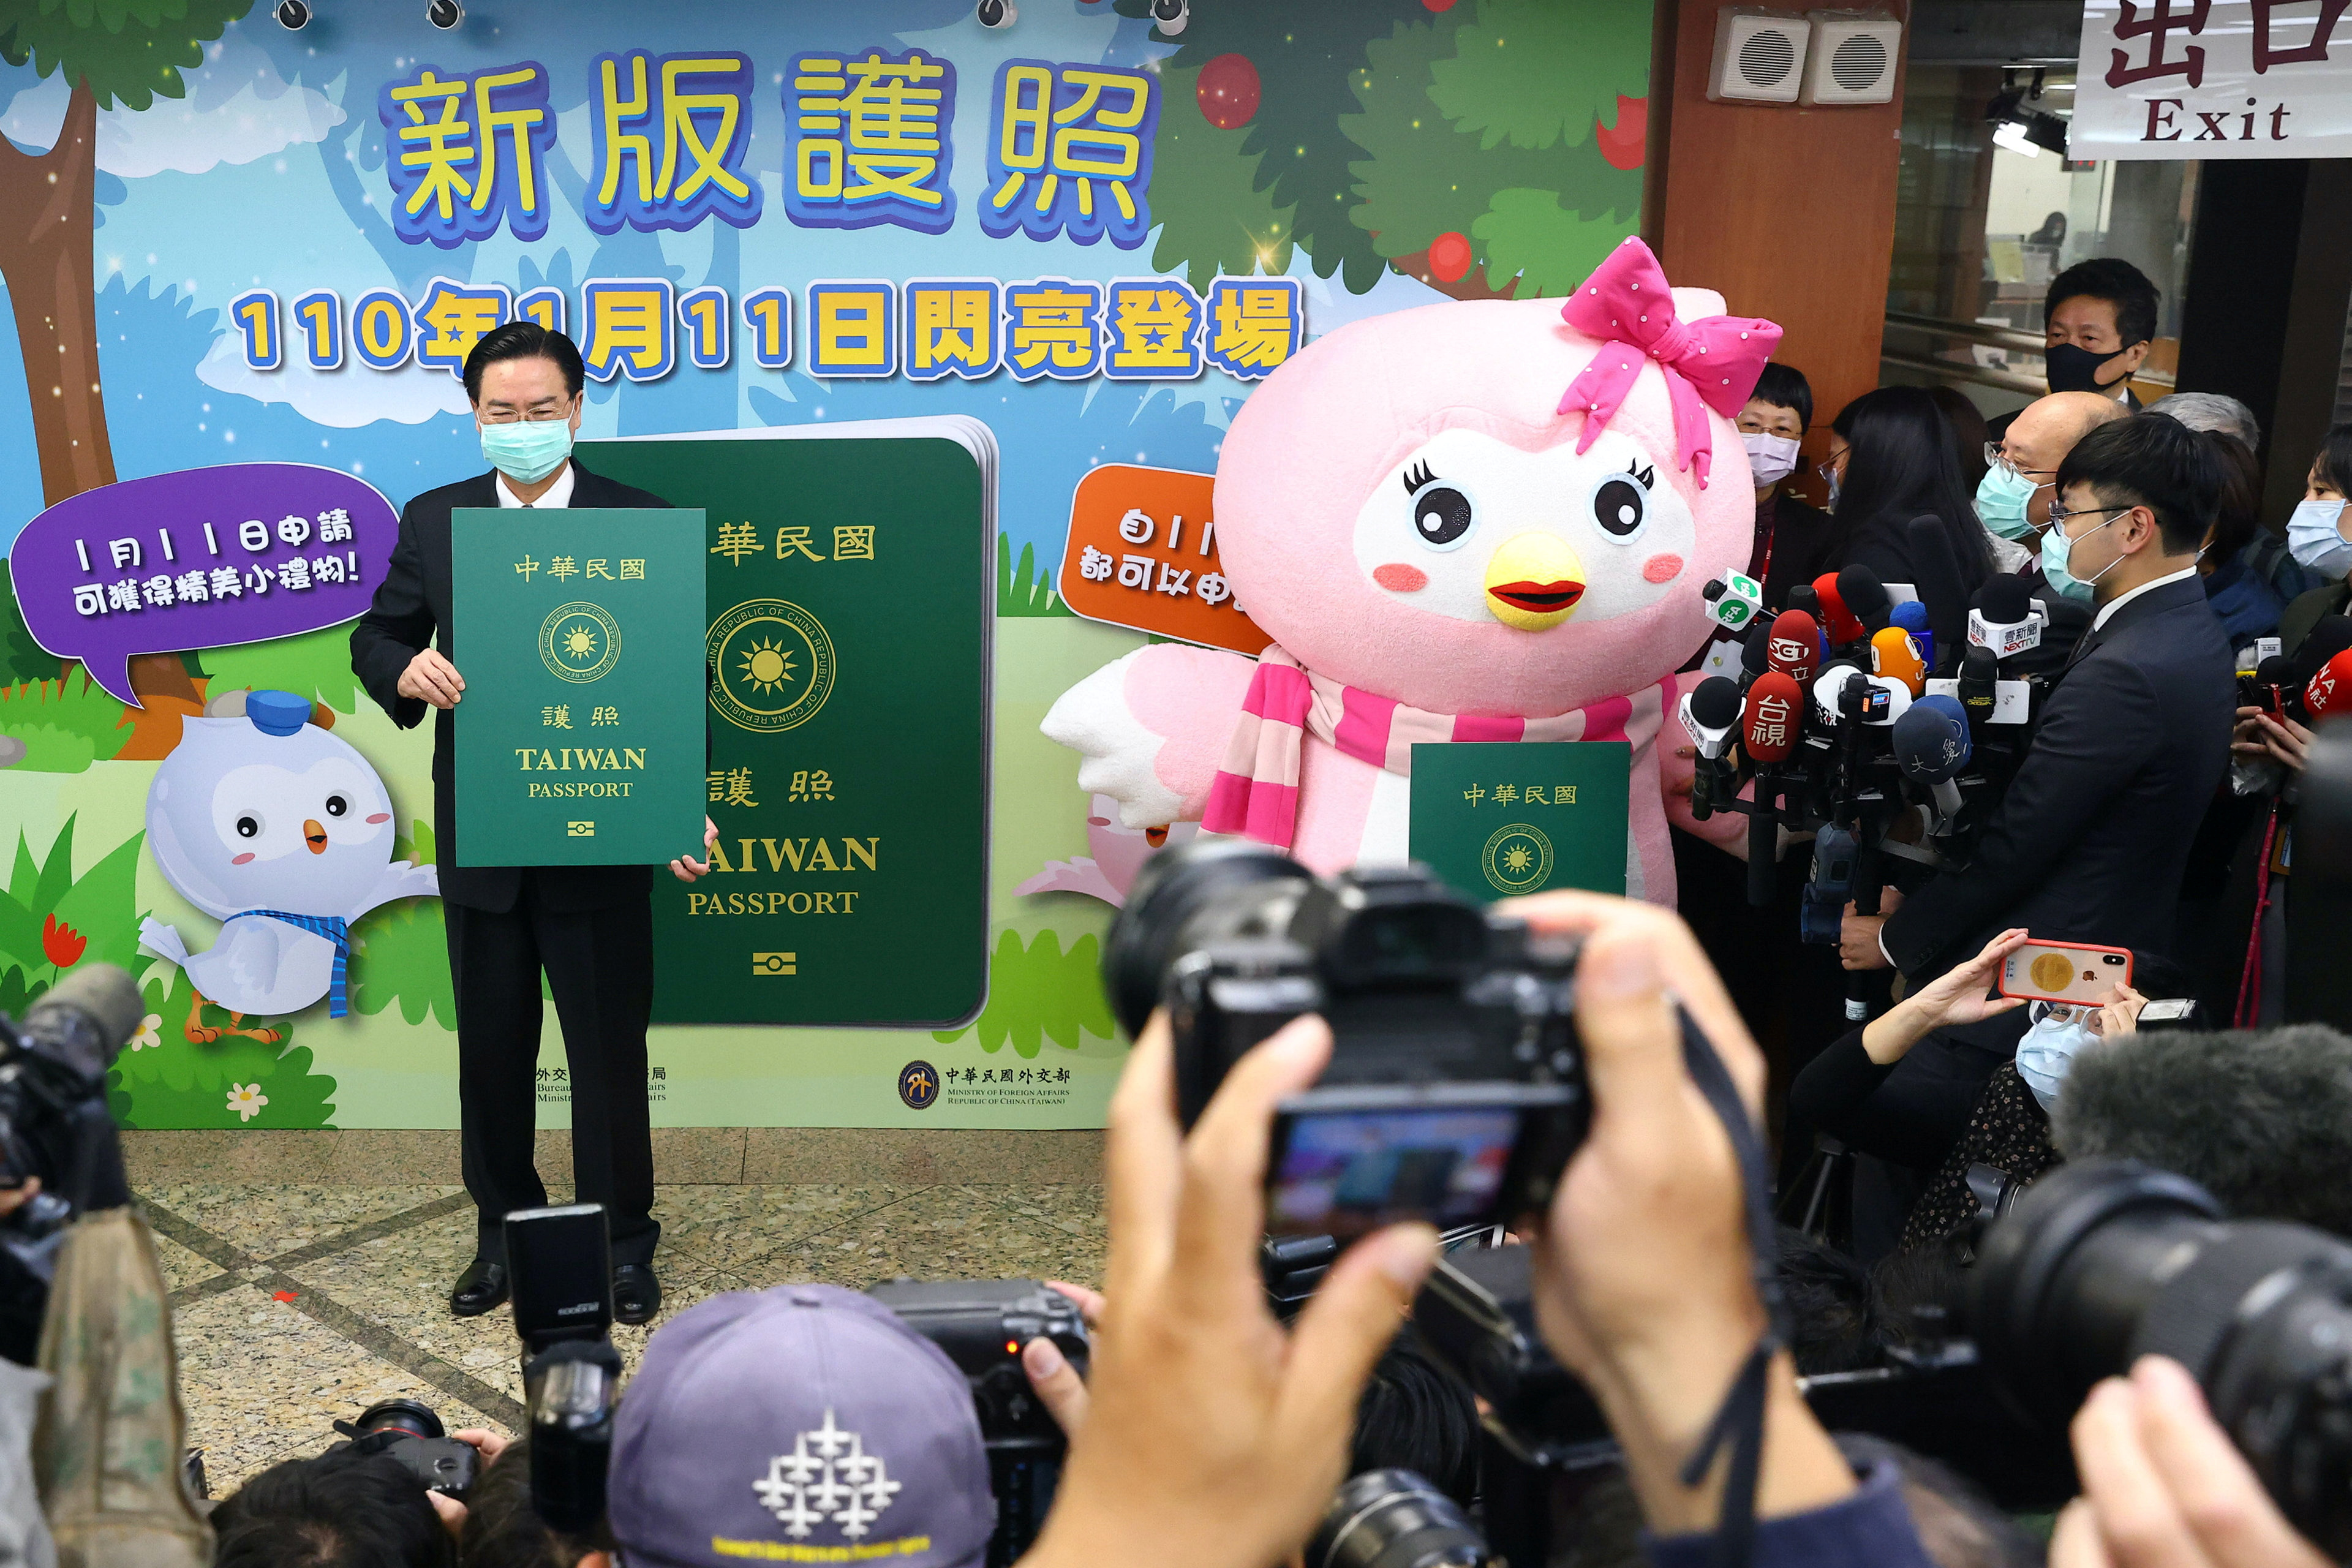 Taiwan's Foreign Minister Joseph Wu takes photos with a sample of the new Taiwan passport in Taipei, Taiwan, January 11, 2021. REUTERS/Ann Wang